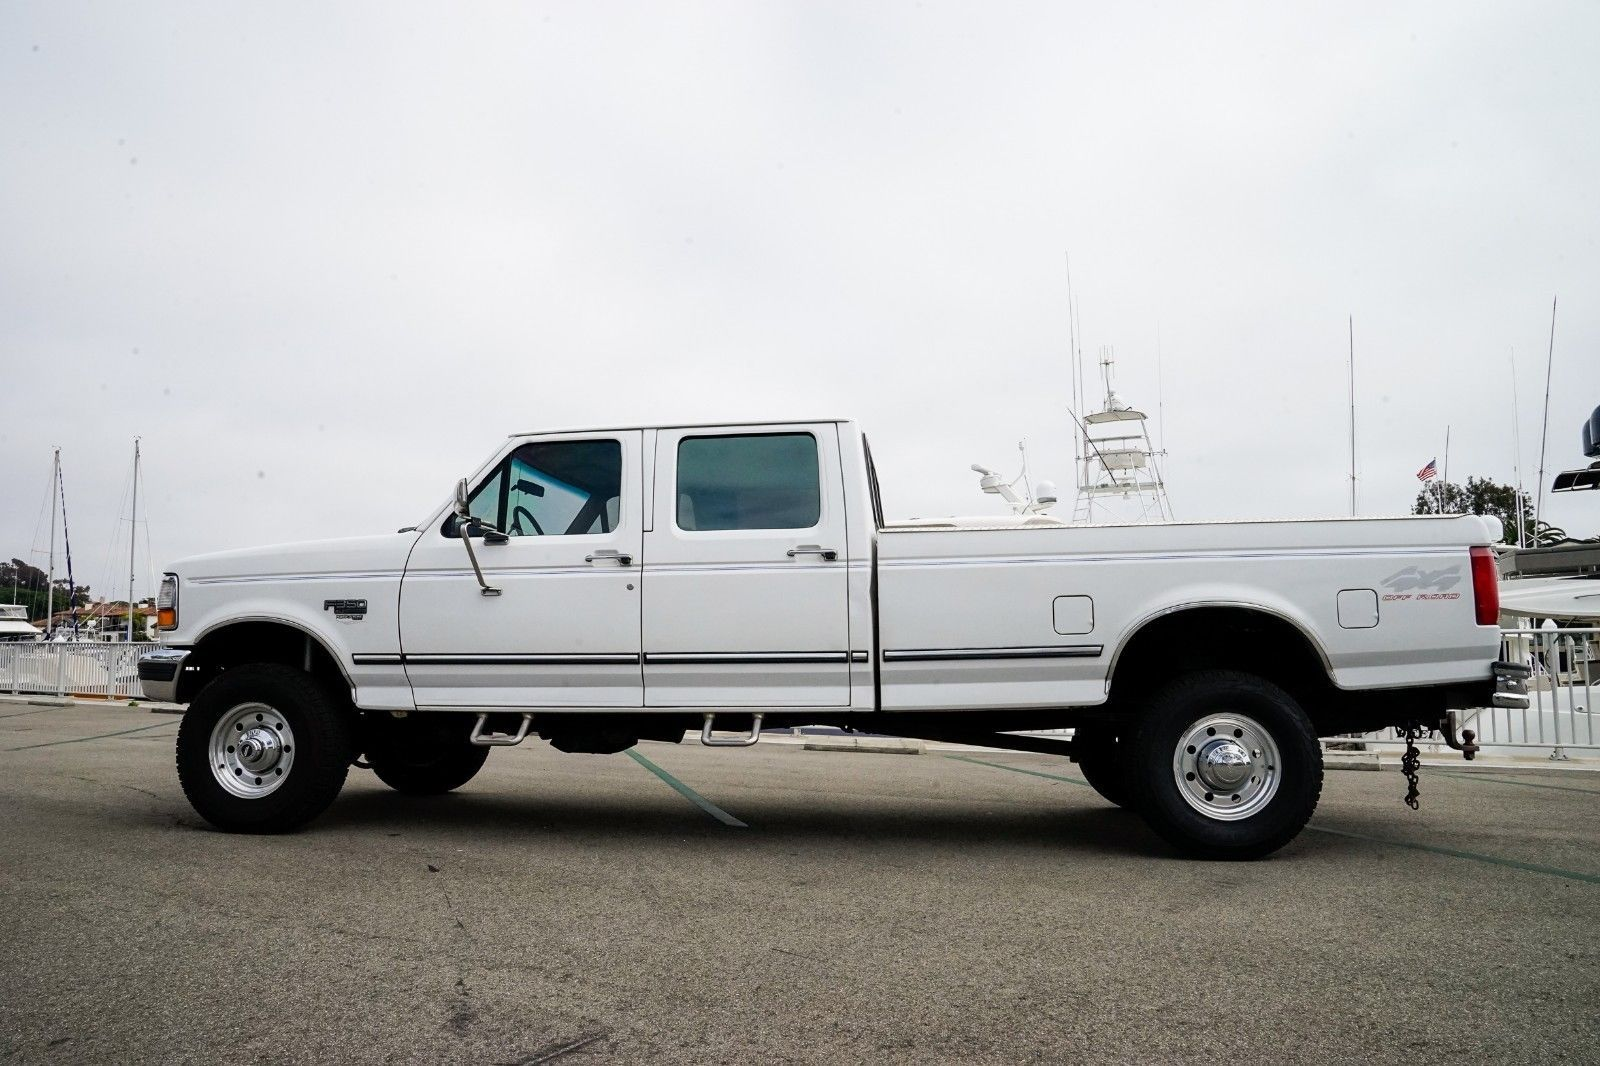 1997 Ford F 350 Xlt 1996 Ford F350 Crew Cab 4x4 7 3 Powerstroke Diesel 171k Original Miles Cars For Sale Ford Ford F350